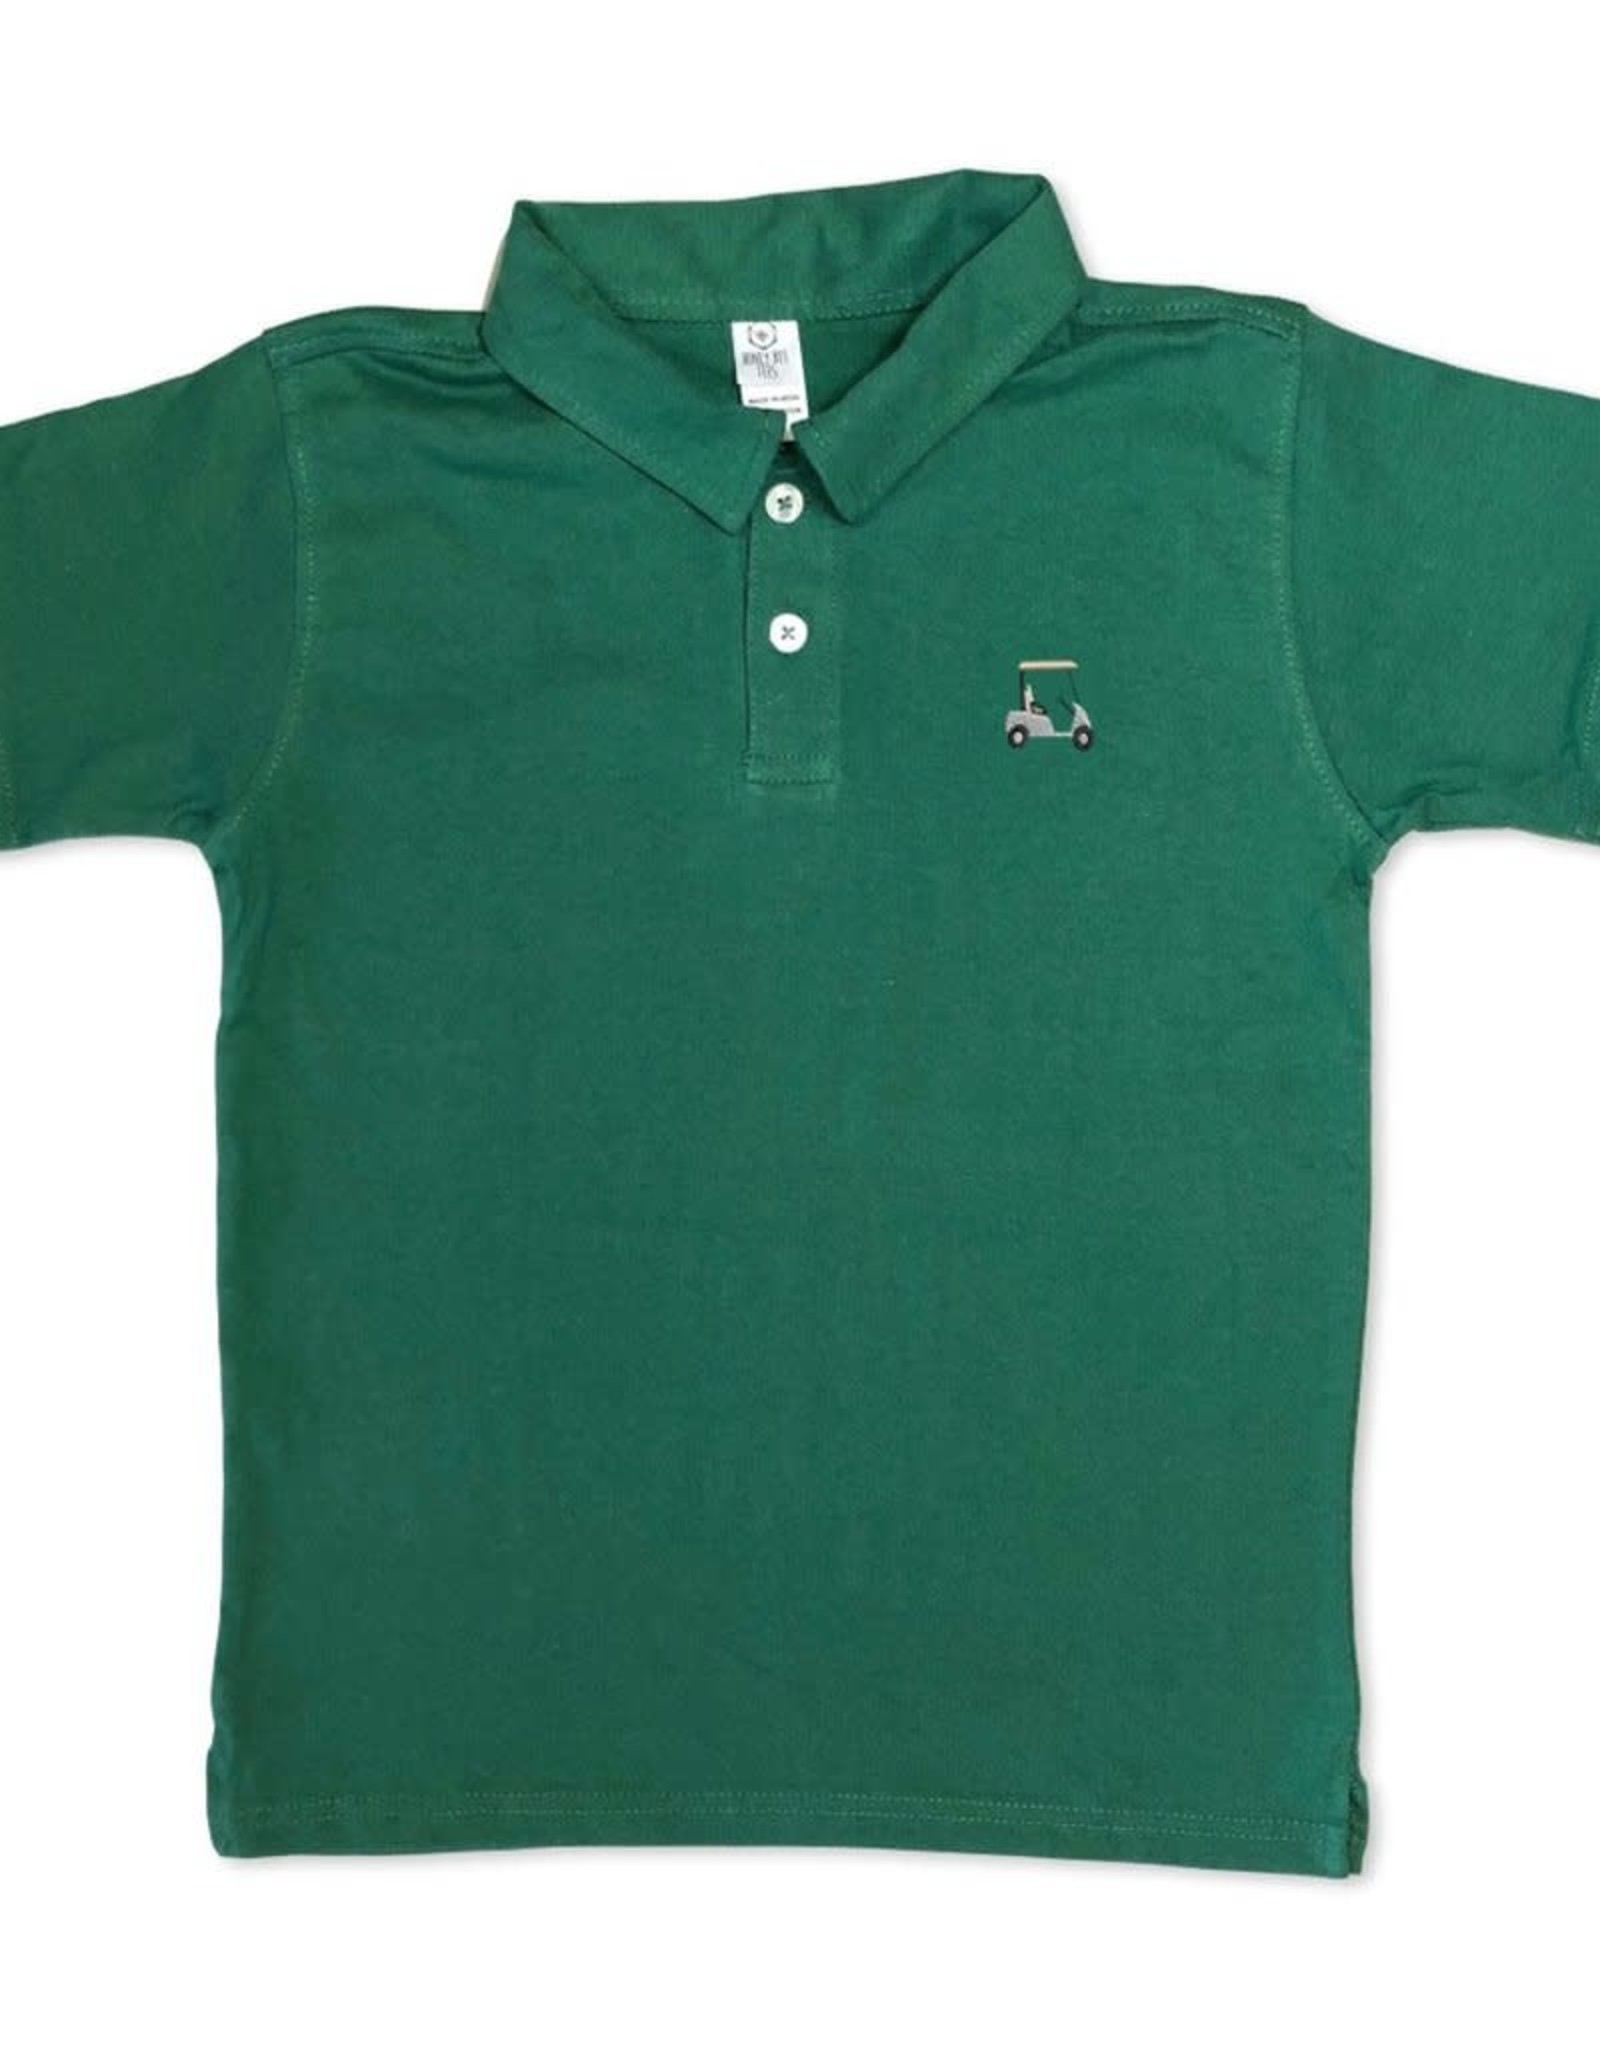 Honey Bee Tees Golf Cart Polo Green